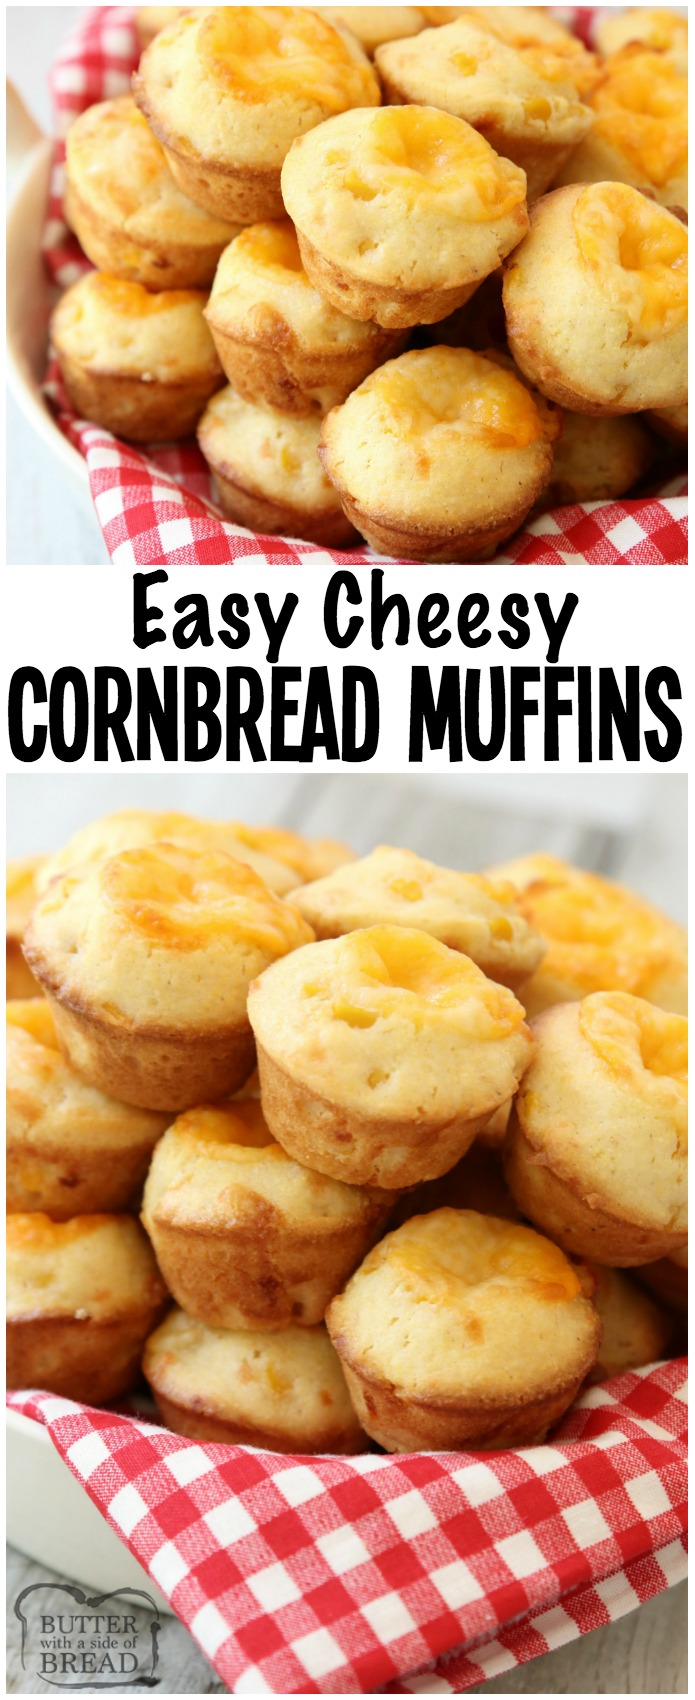 Cheesy Cornbread Muffins are delicate, flavorful honey cornbread with a cheddar cheese addition! Fun, bite-sized mini cornbread muffin recipe perfect for accompanying lunch or dinner any time of the year!